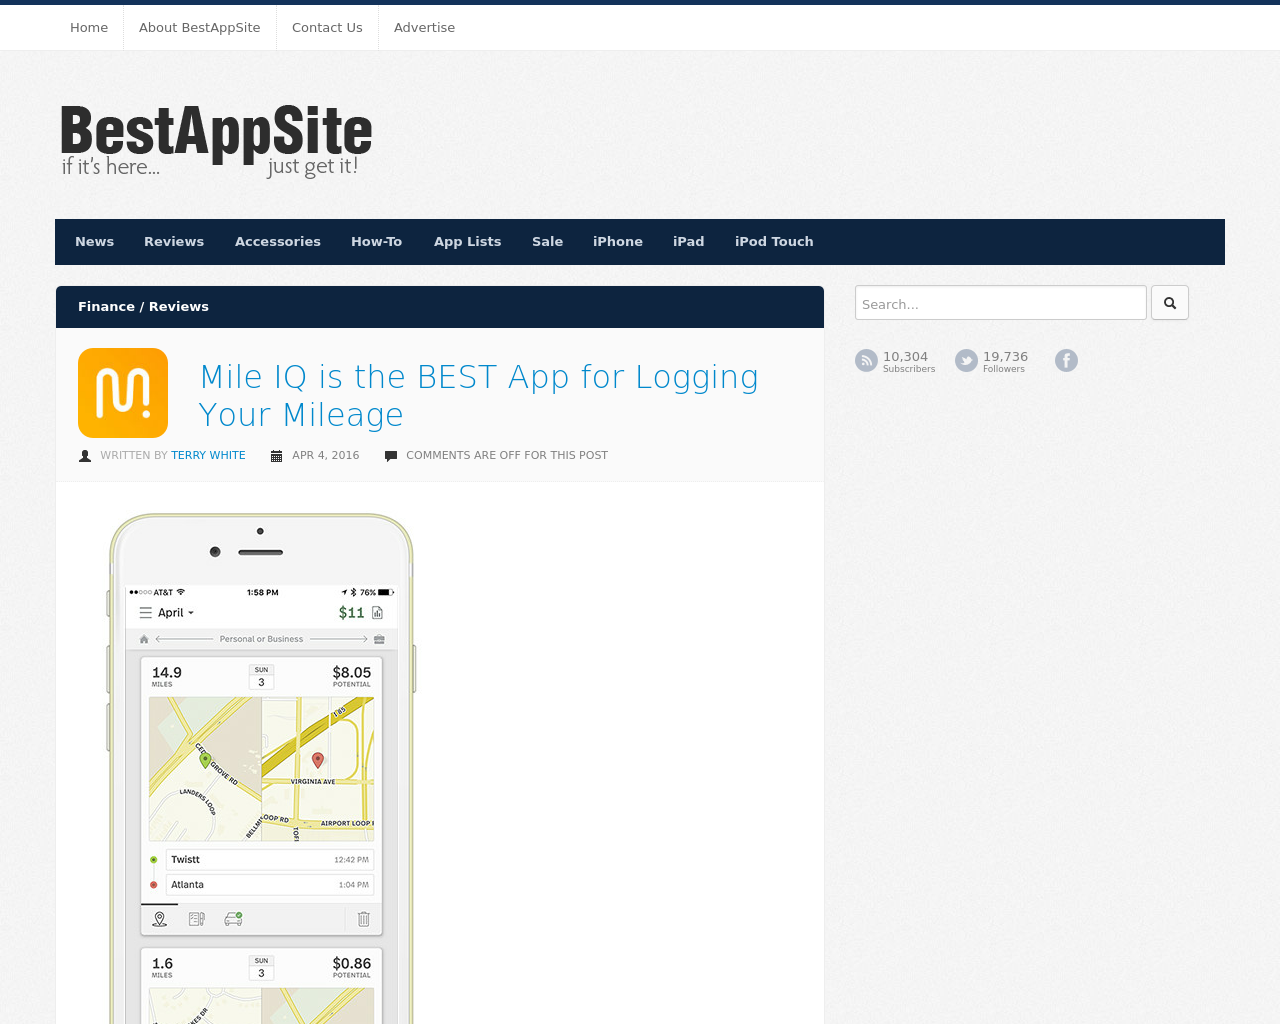 BestAppSite-Advertising-Reviews-Pricing